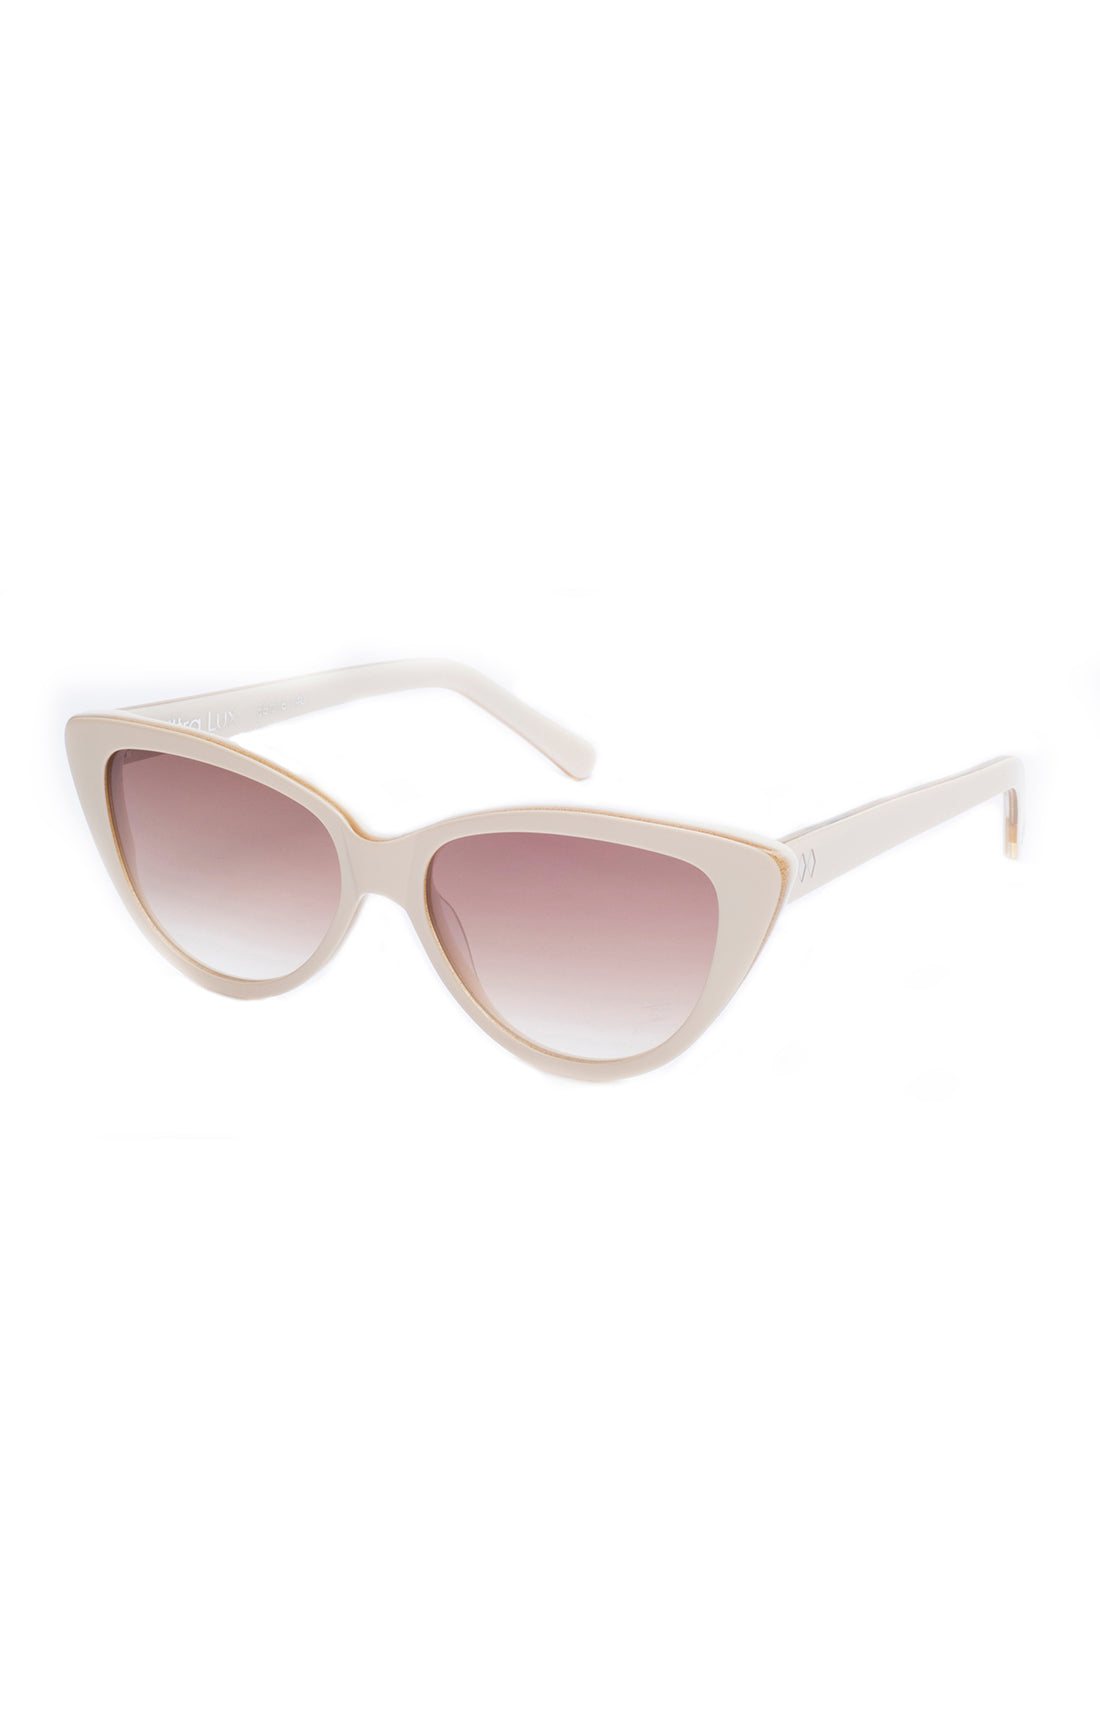 The ULTRA LUX Sunglasses - Cream Frames w/ Brown Gradient Lenses